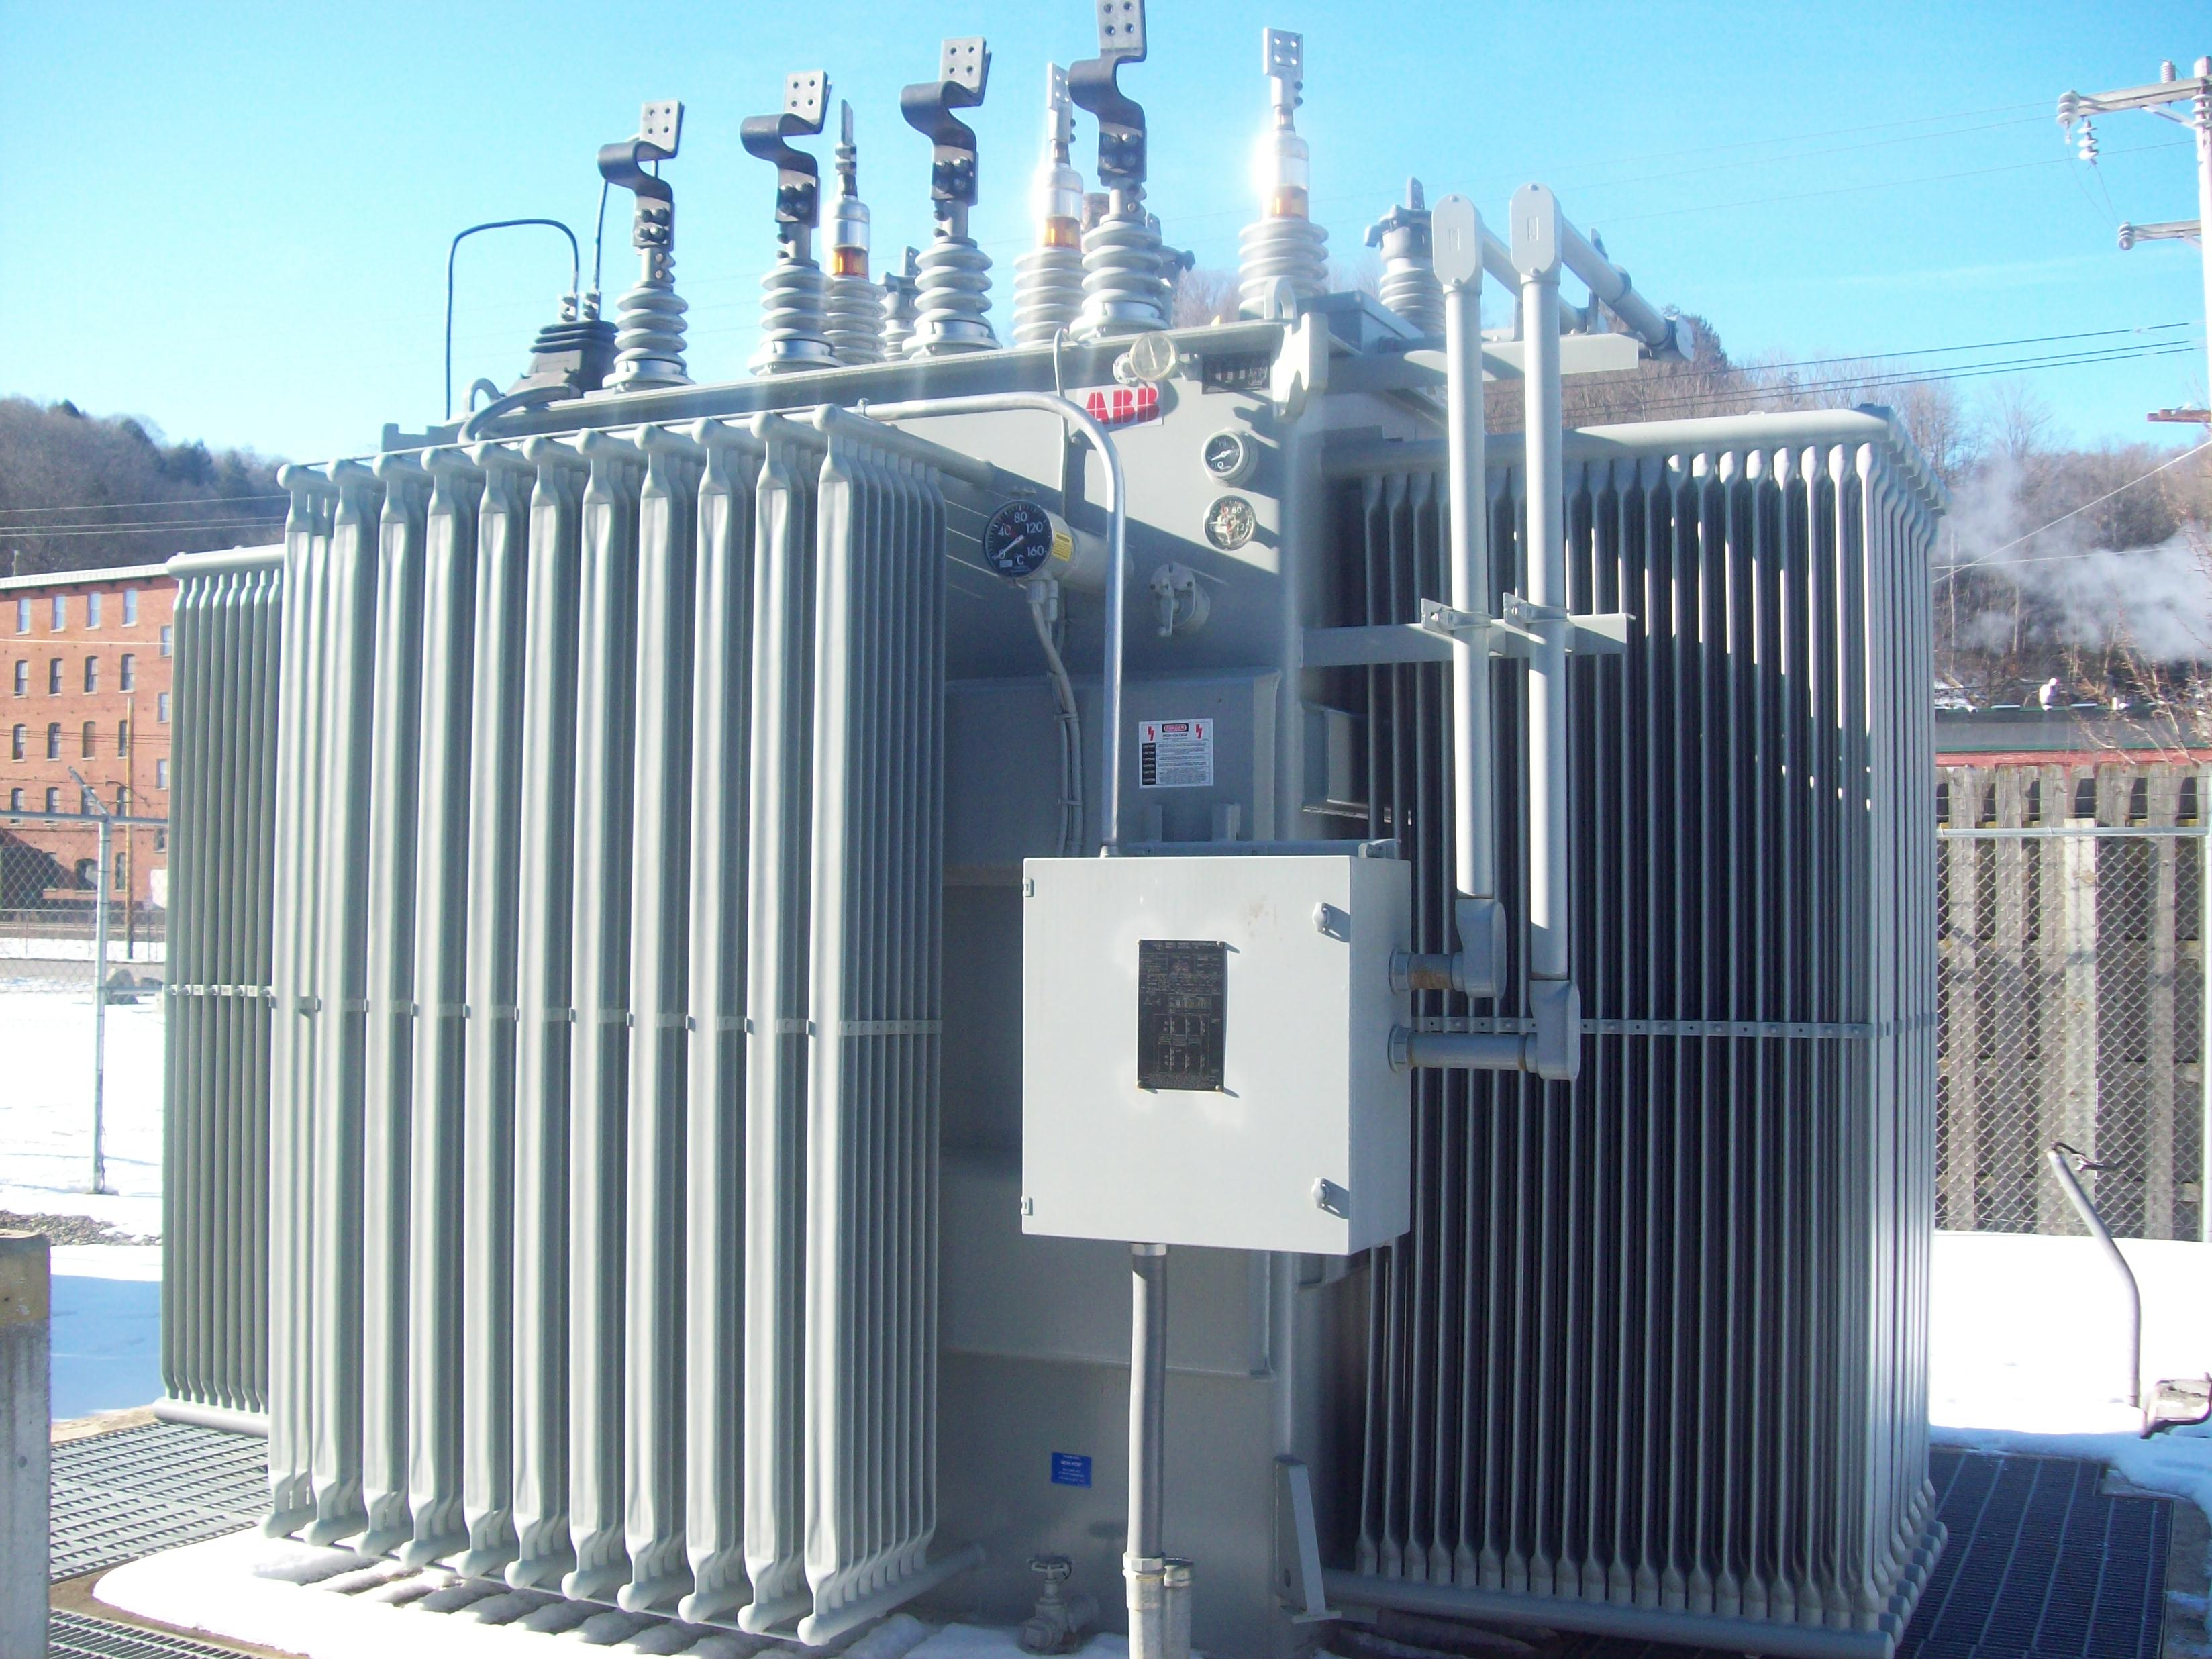 Click to see larger image - ABB Small Power Transformer 7500 / 8400 KVA - ABB Substation Transformer, Mfd  2007